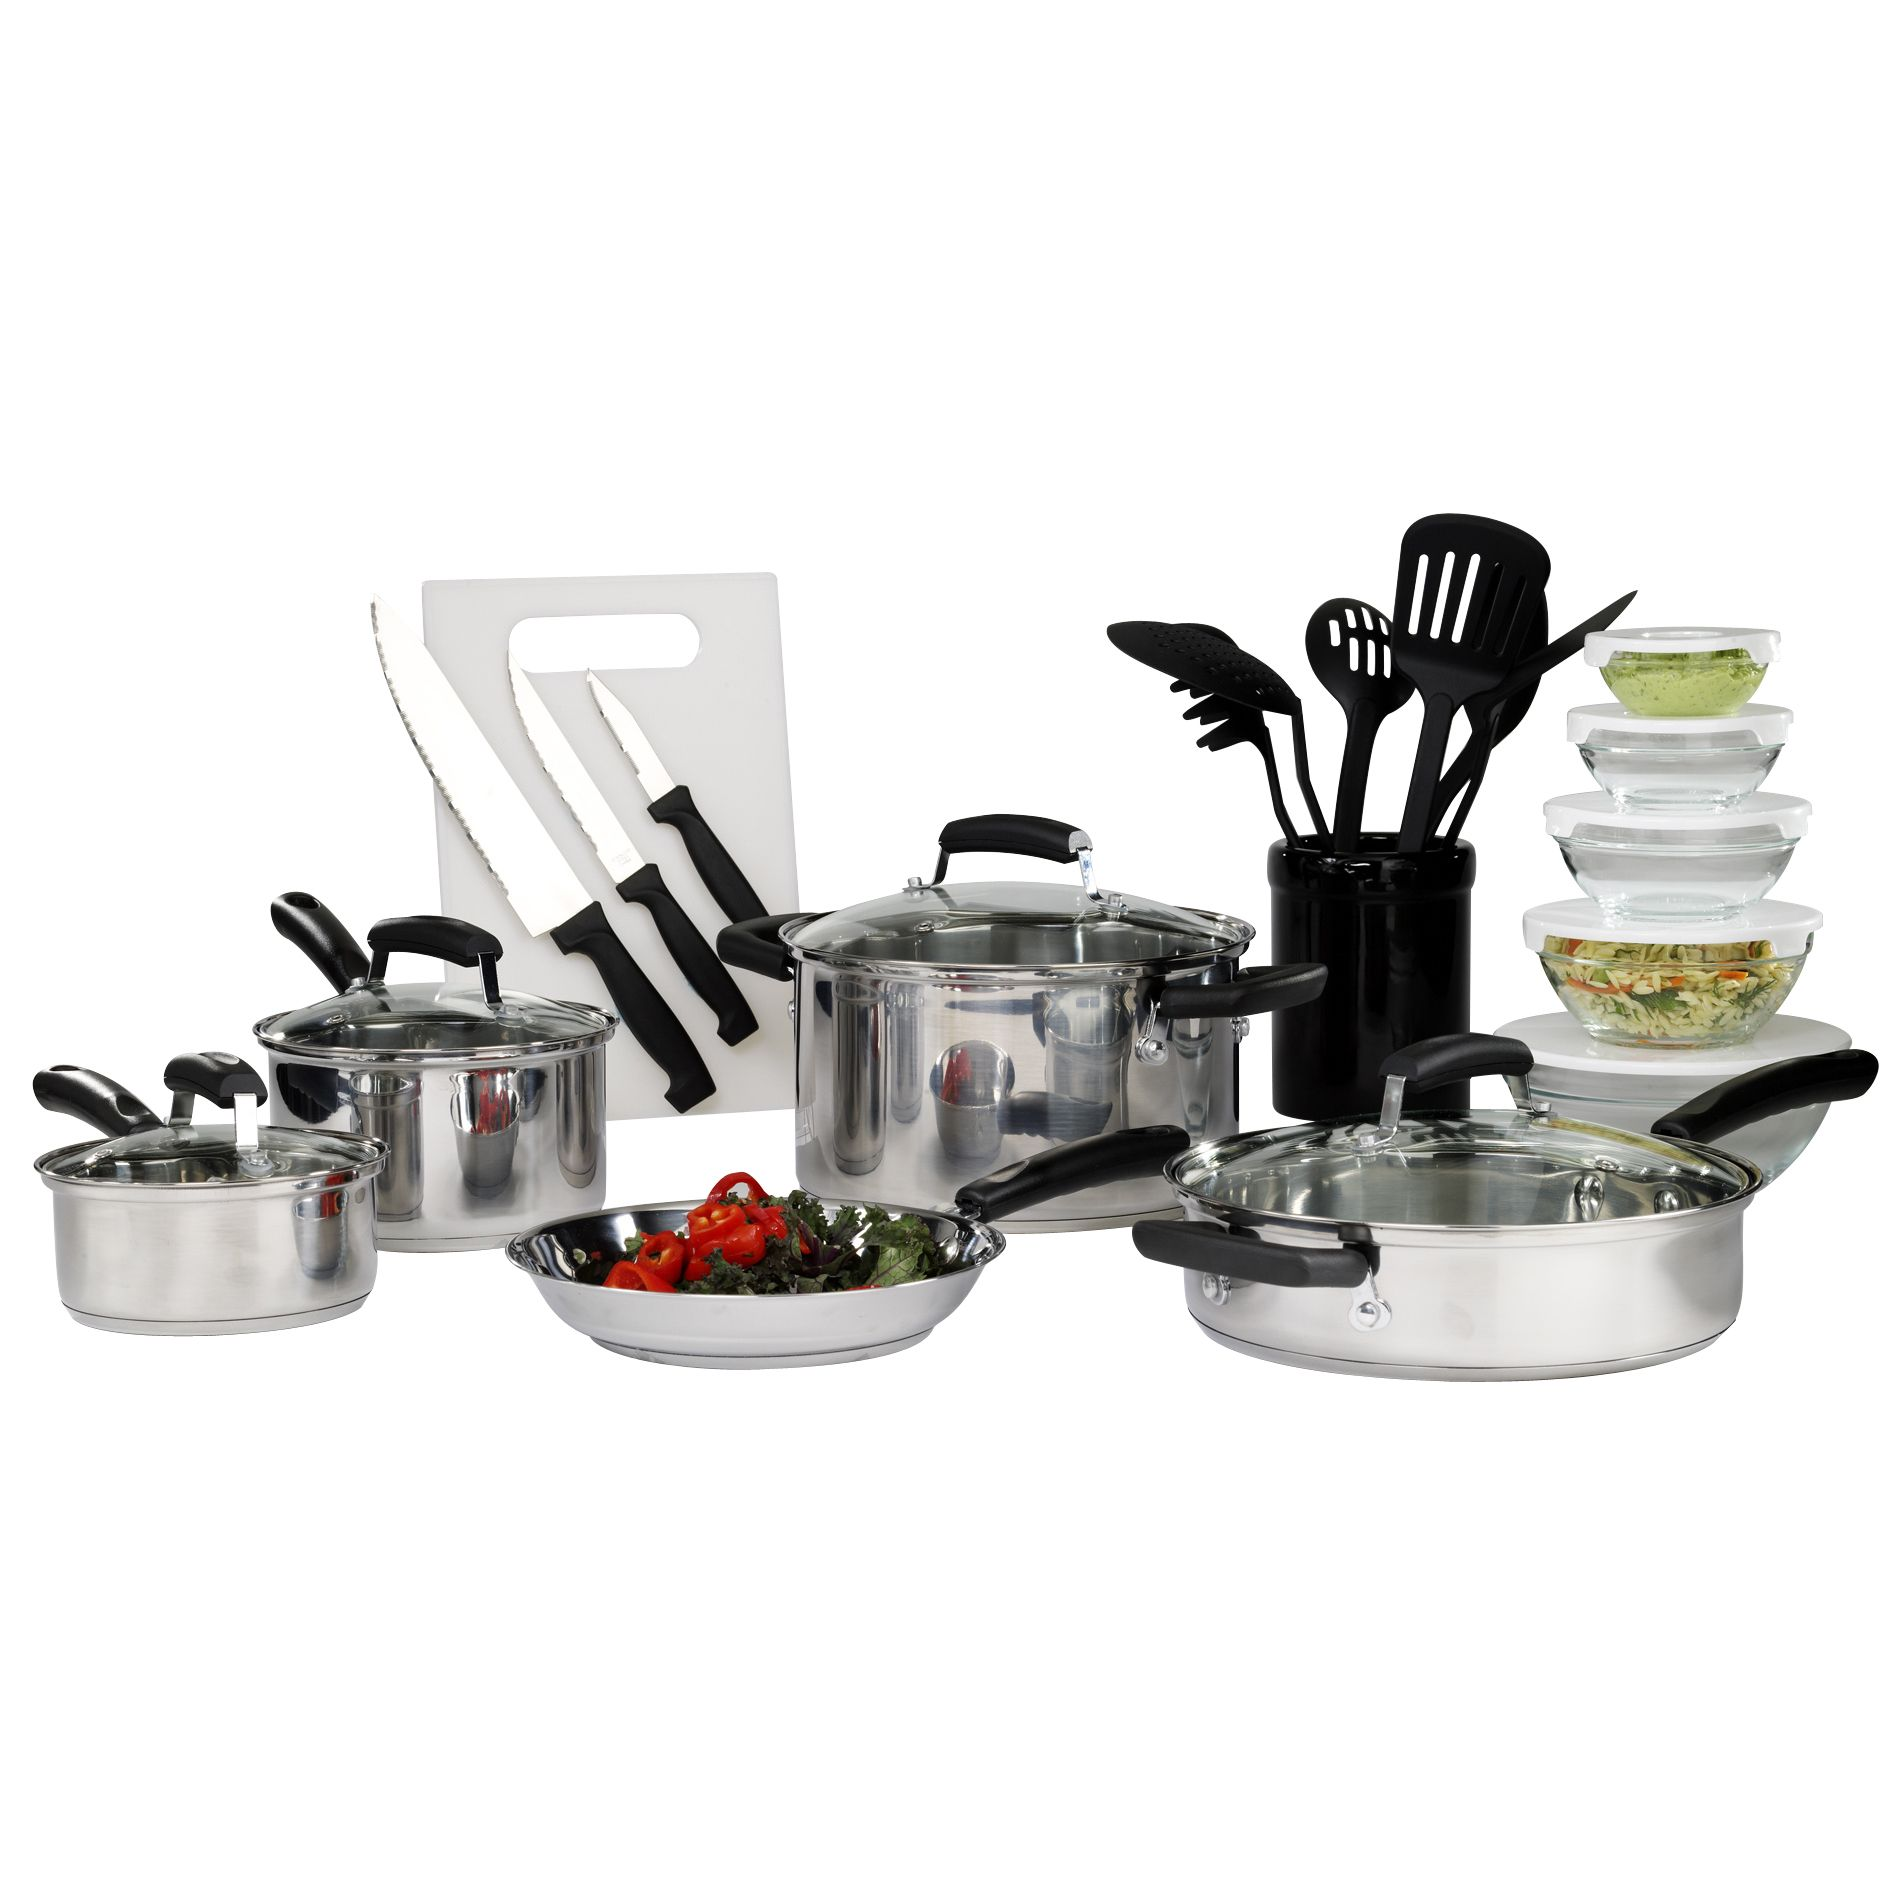 25 pc Stainless Steel Mega Set